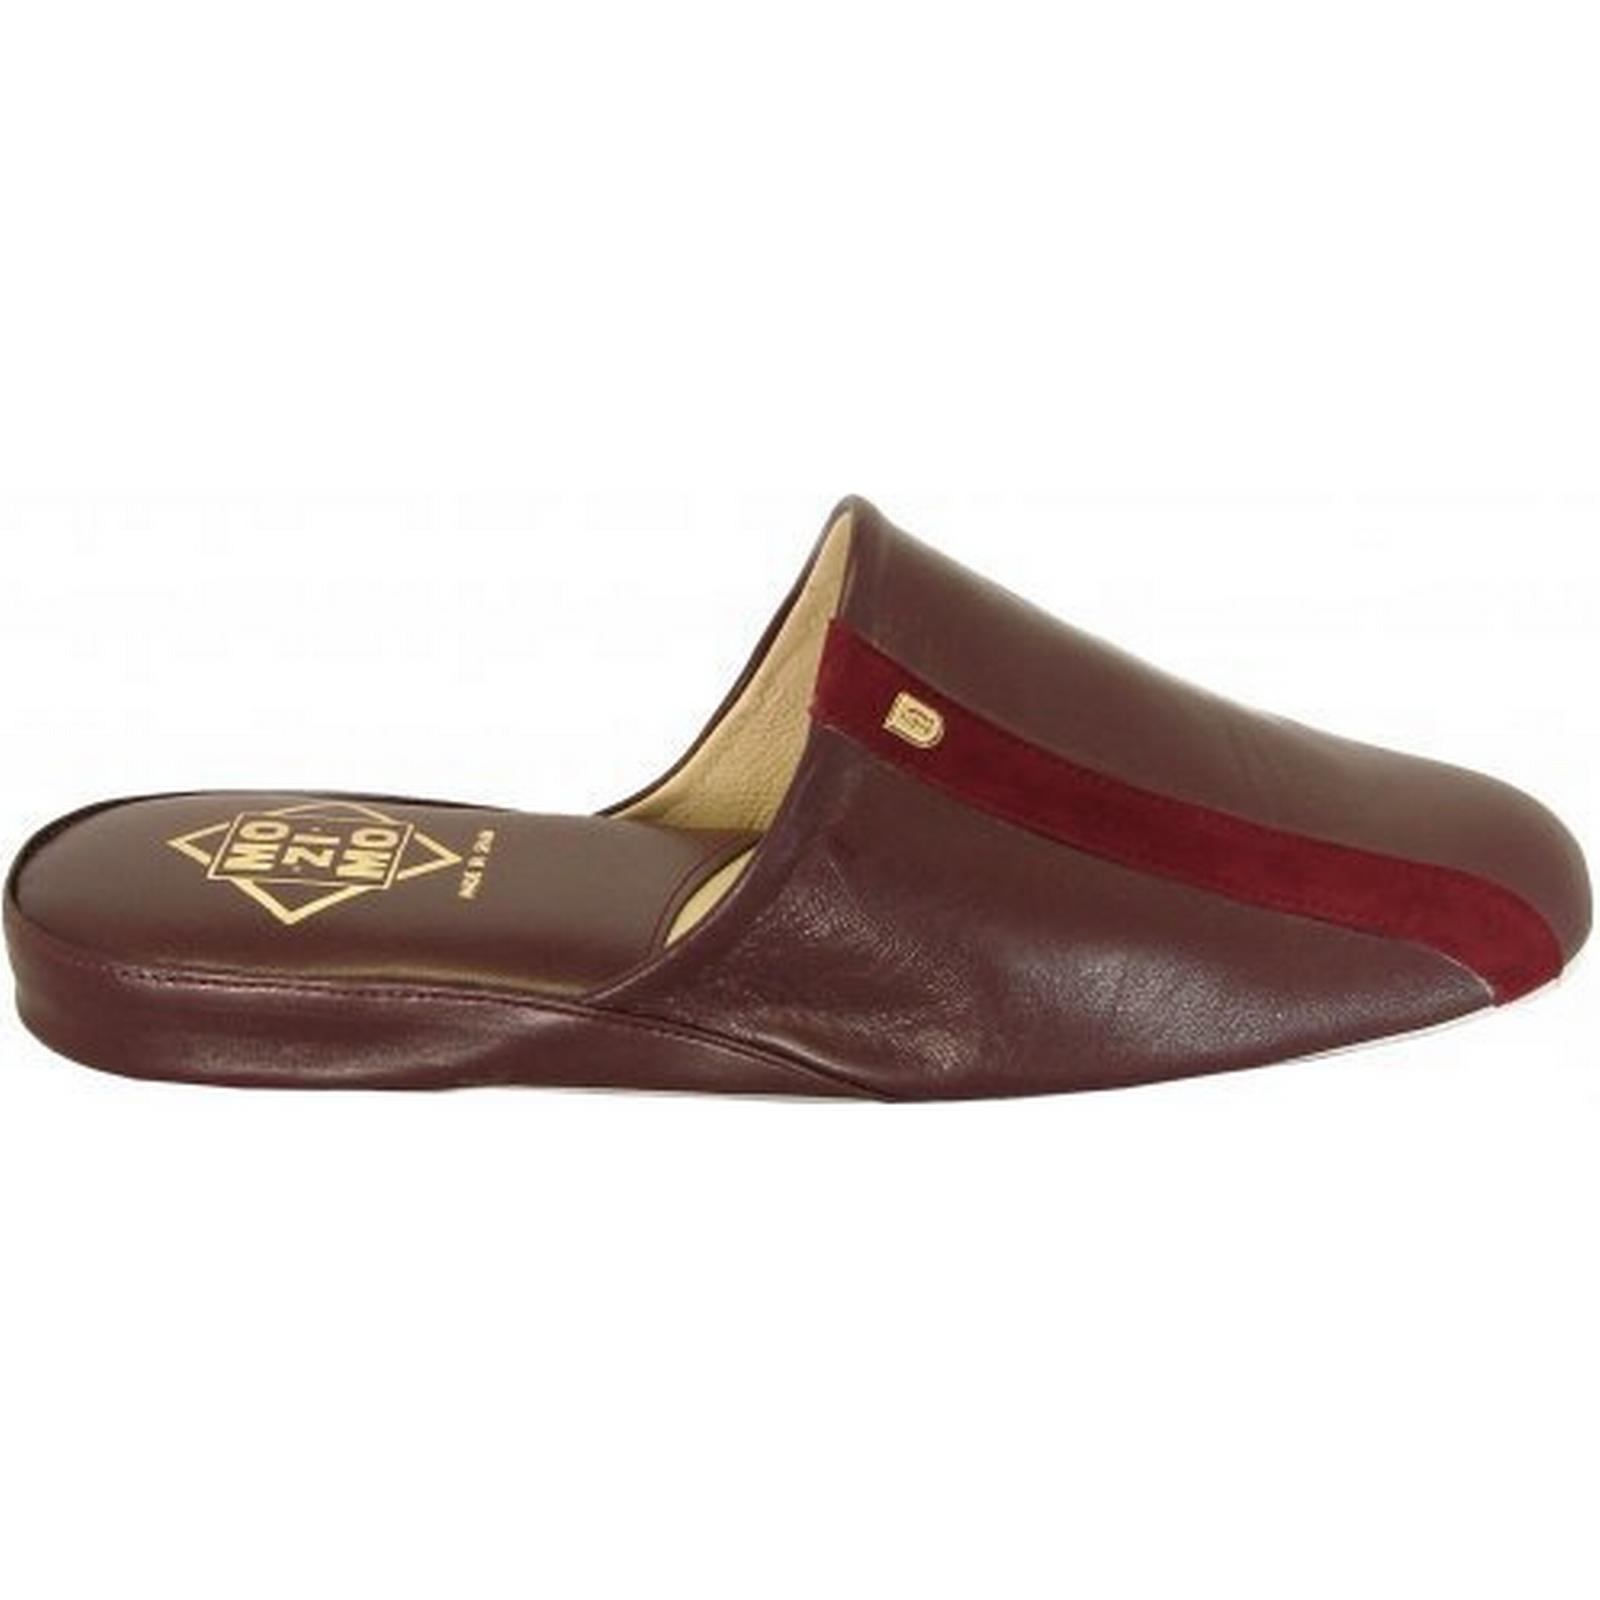 Relax Slippers ROSS GENTS SLIPPERS MULE STYLE Size: Size: STYLE 10, Colour: WINE 569ef7